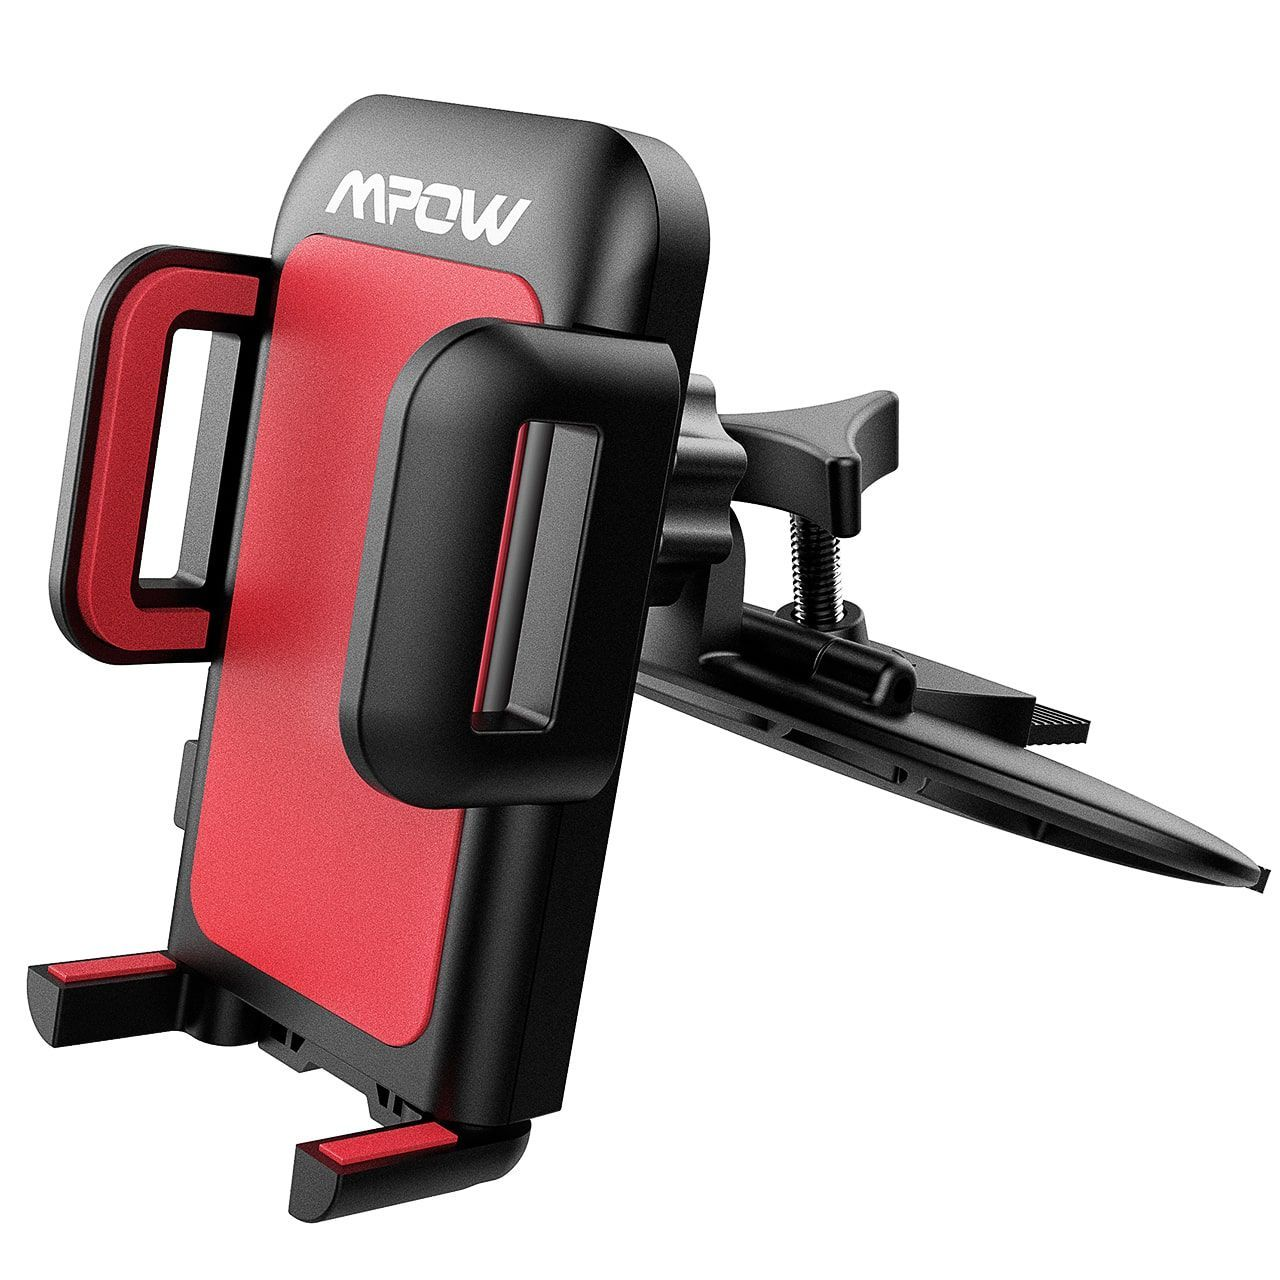 mpow cd slot car mount, universal smartphone holder for iphone 7